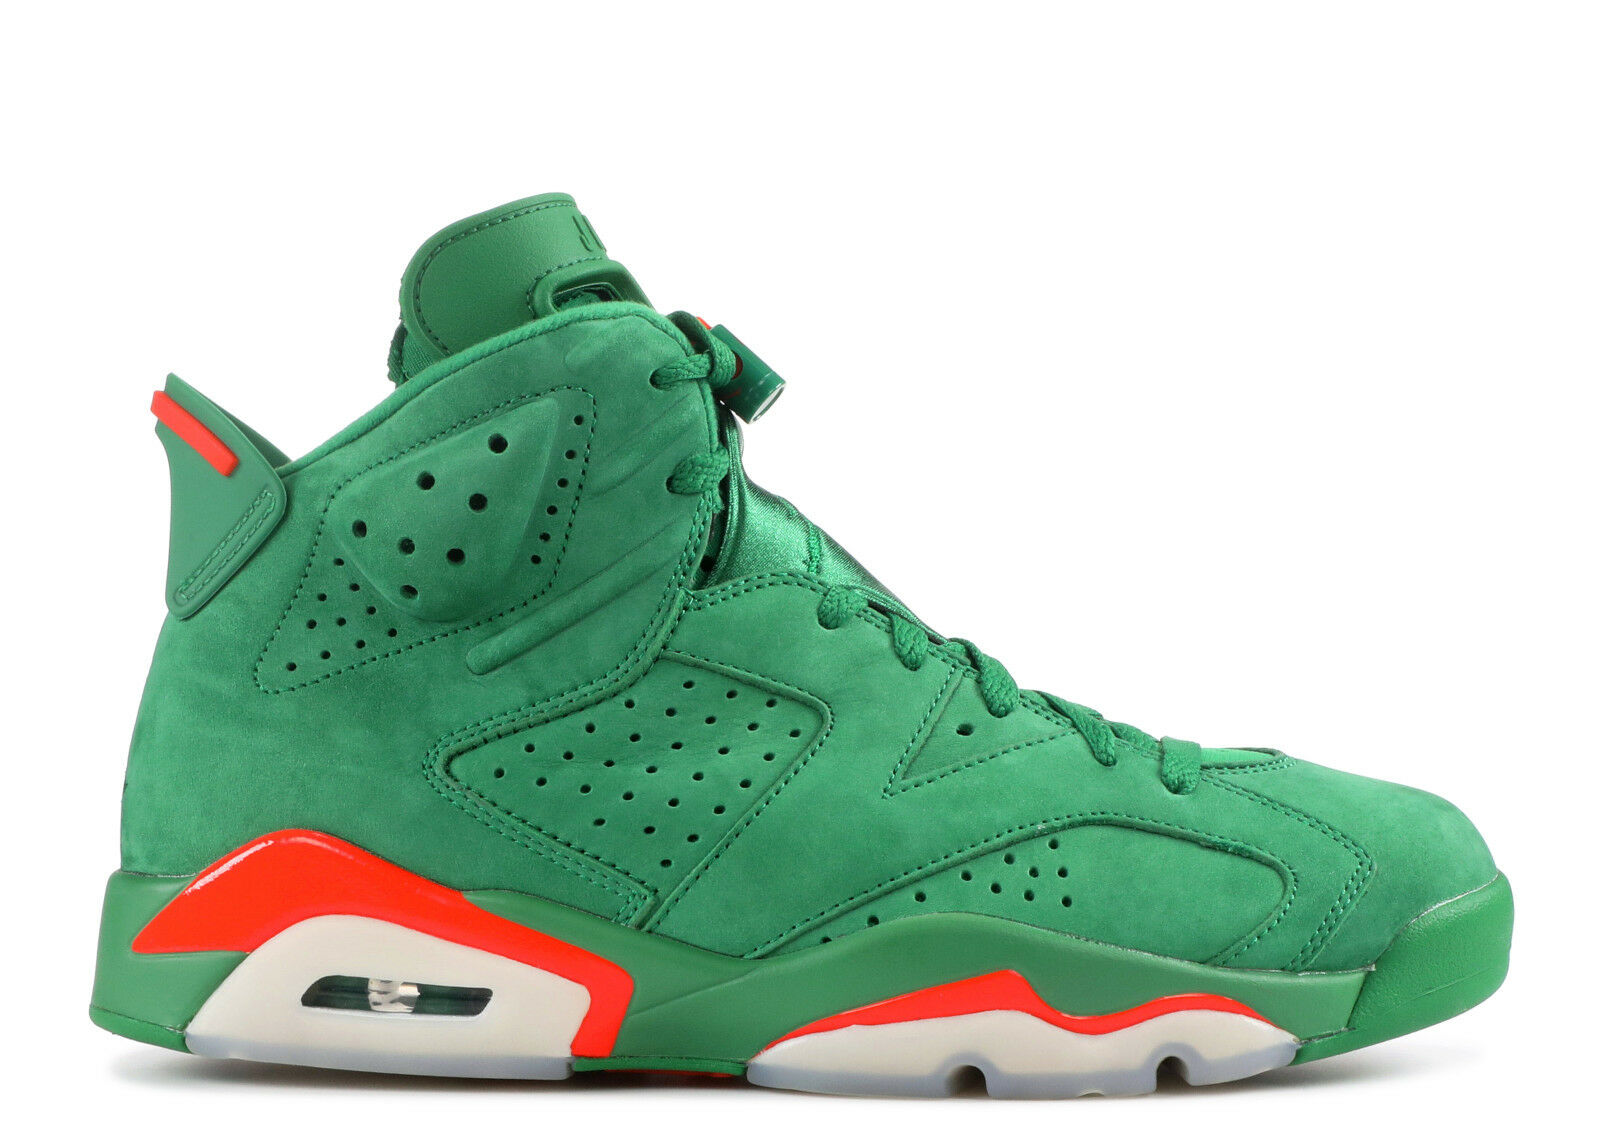 Men's Nike Air Jordan Retro 6 NRG Suede  Gatorade  Athletic Sneakers AJ5986 335